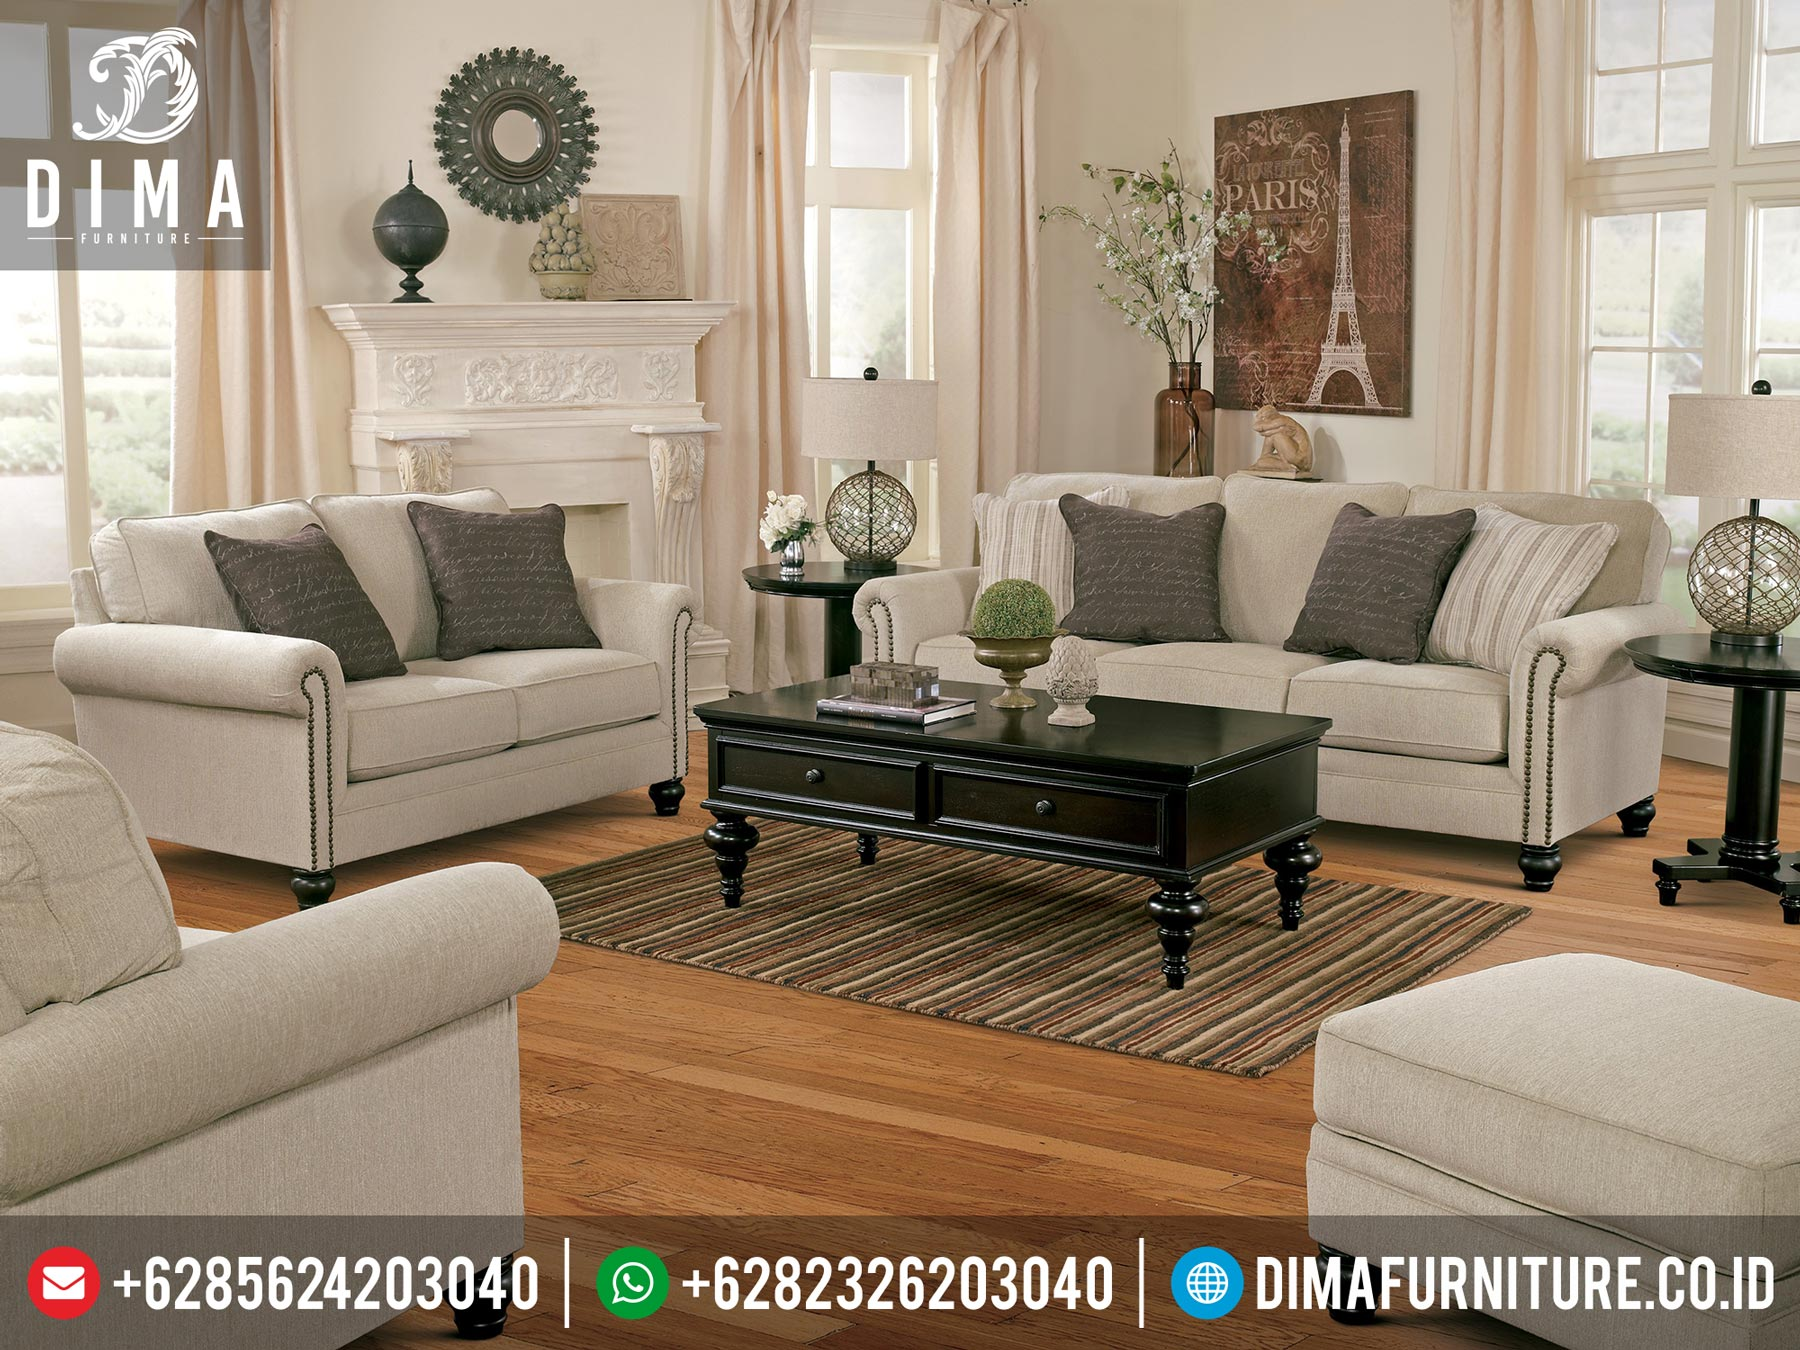 Living room furniture sets under 500 avonlea sofa and loveseat coaster collection dox furn Sofa and loveseat sets under 500